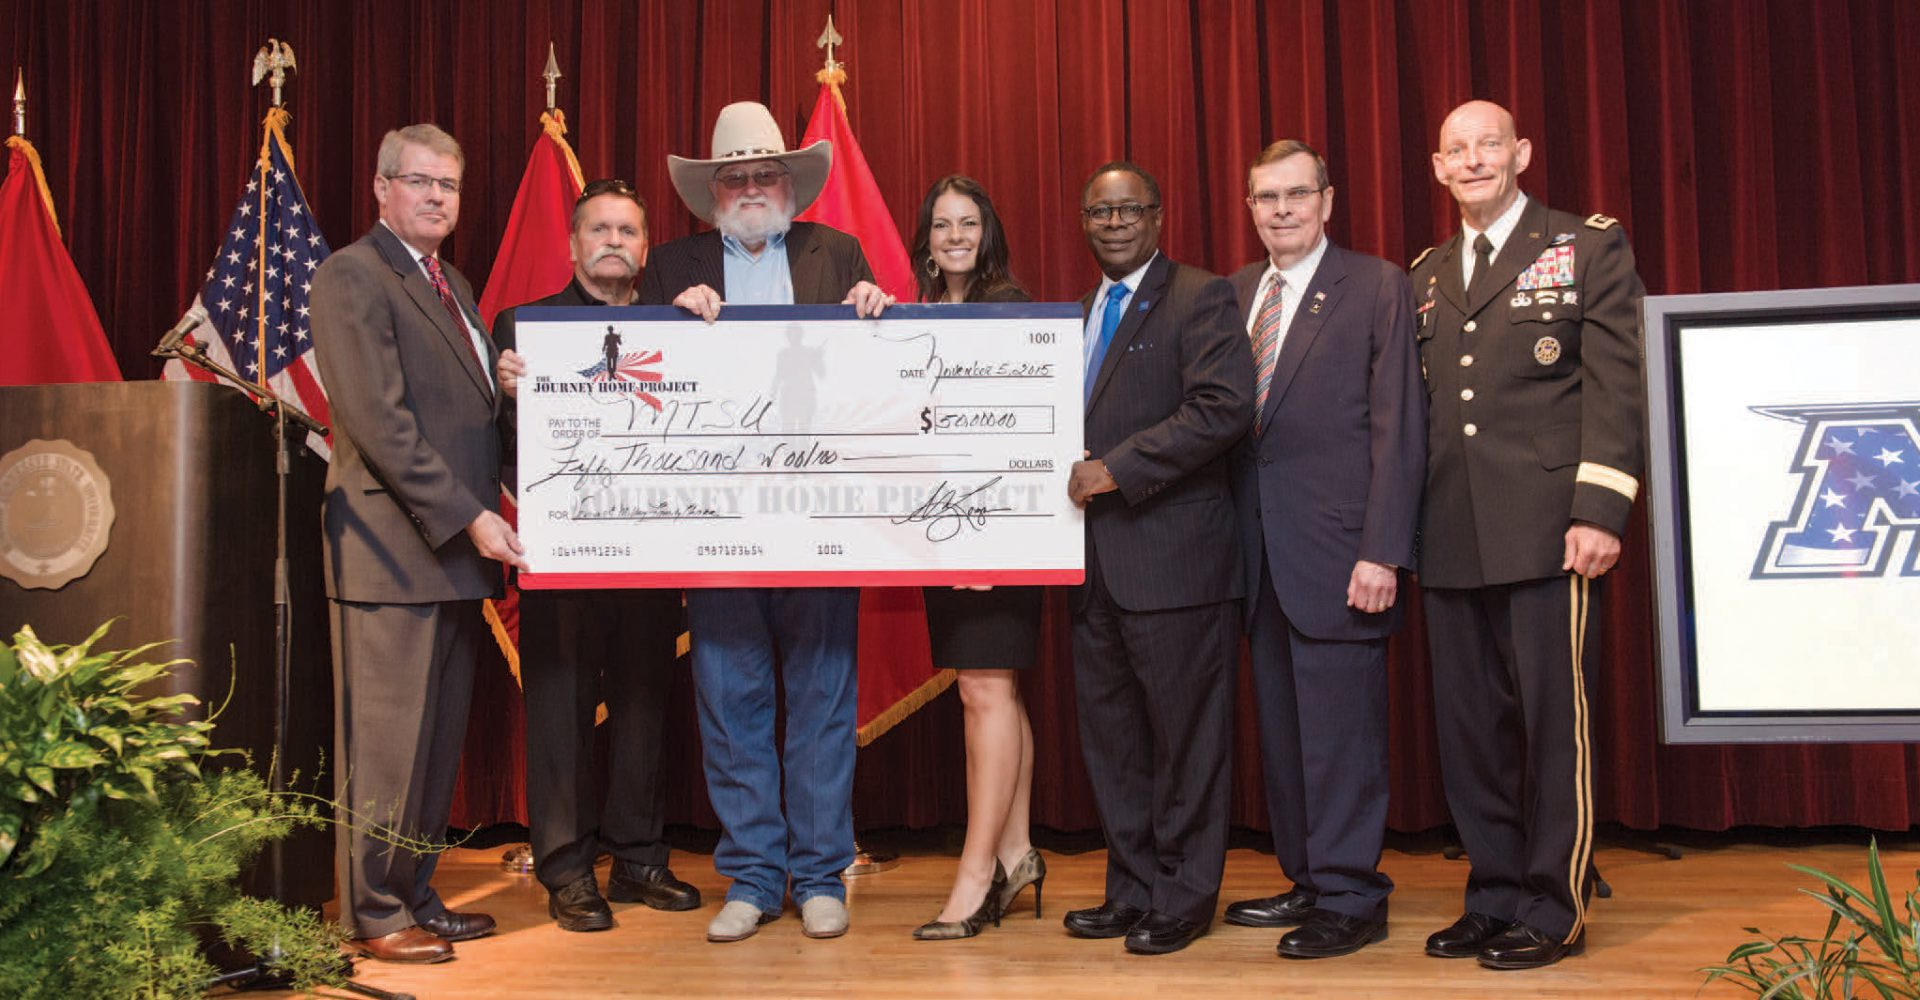 Members of the Journey Home Project including Charlie Daniels give a check to MTSU representatives that include General Huber and Sidney McPhee on a stage.